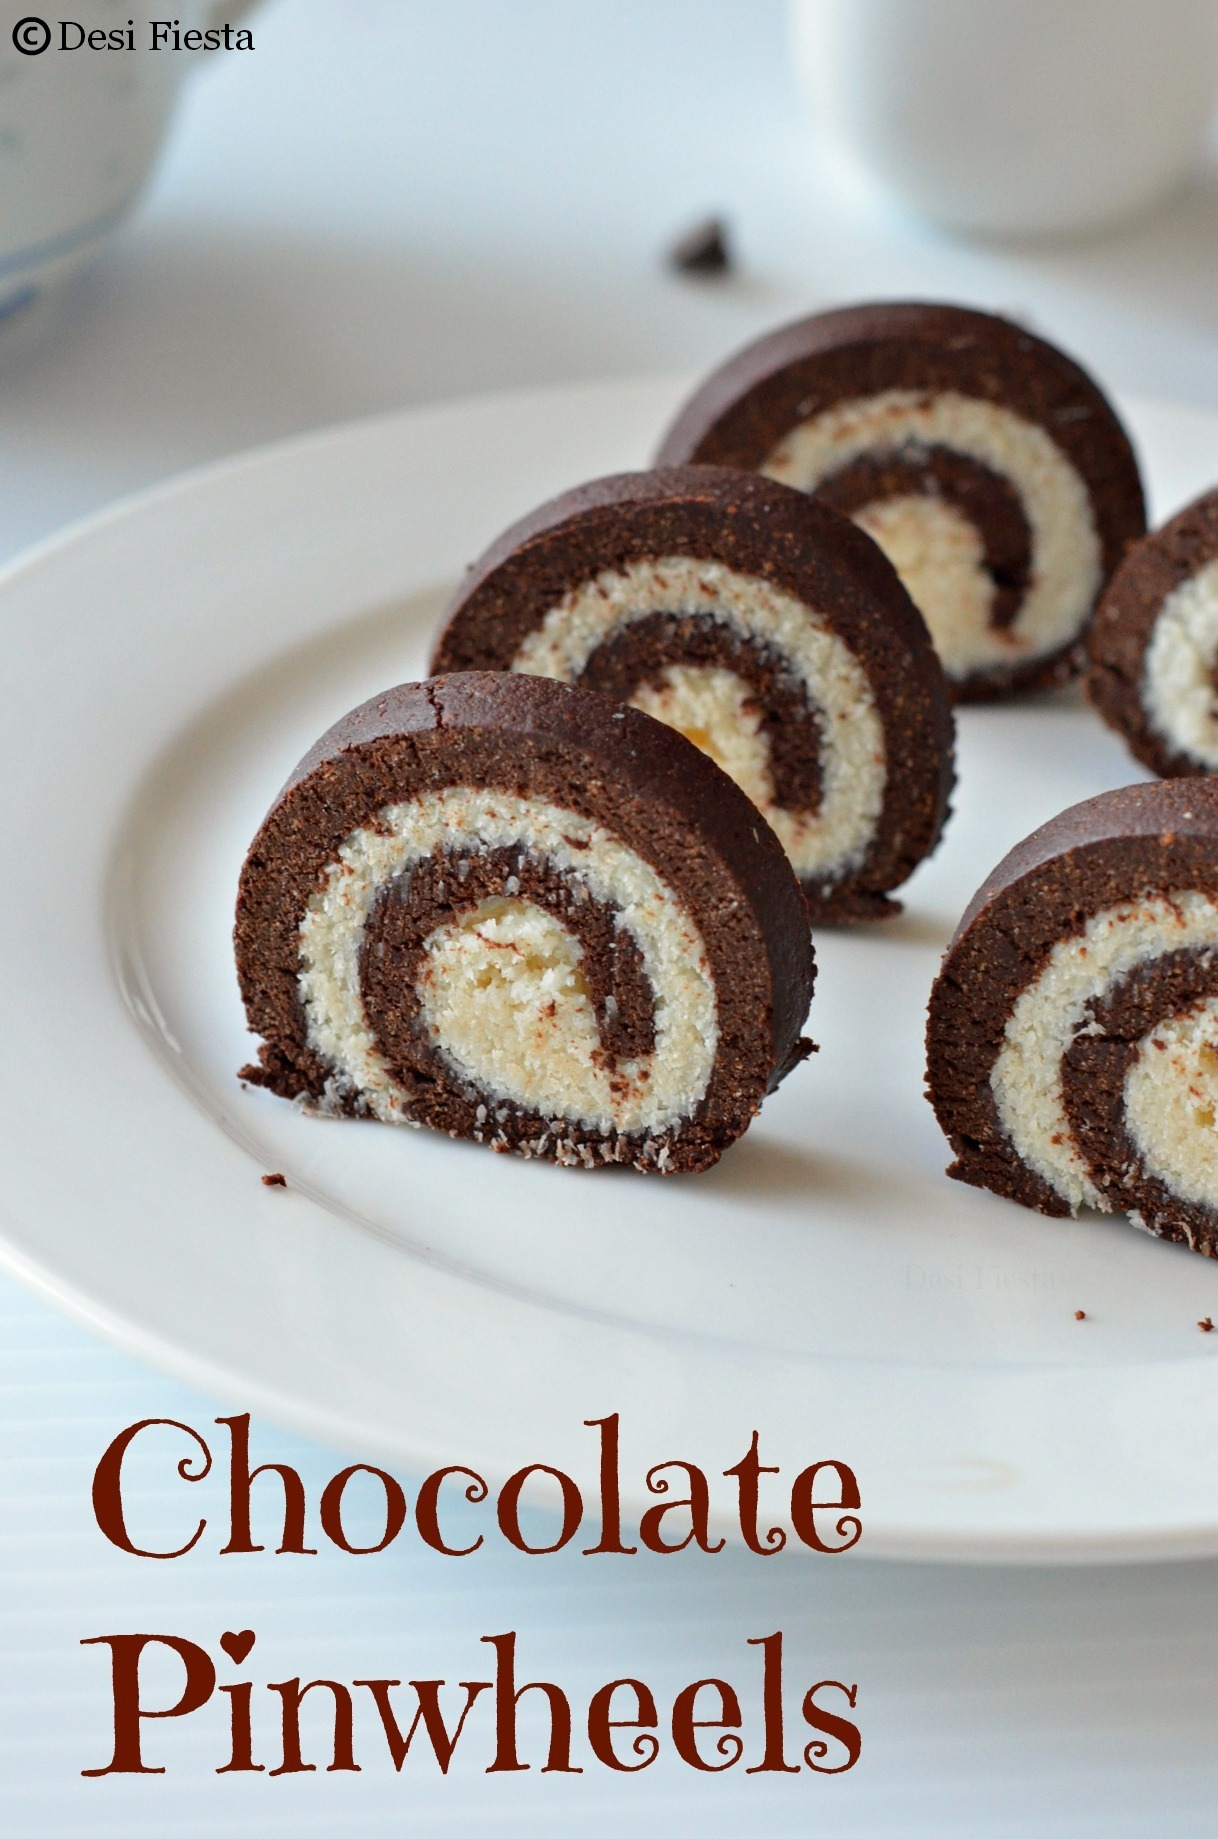 Chocolate Pinwheels |No cooking or Baking Recipe